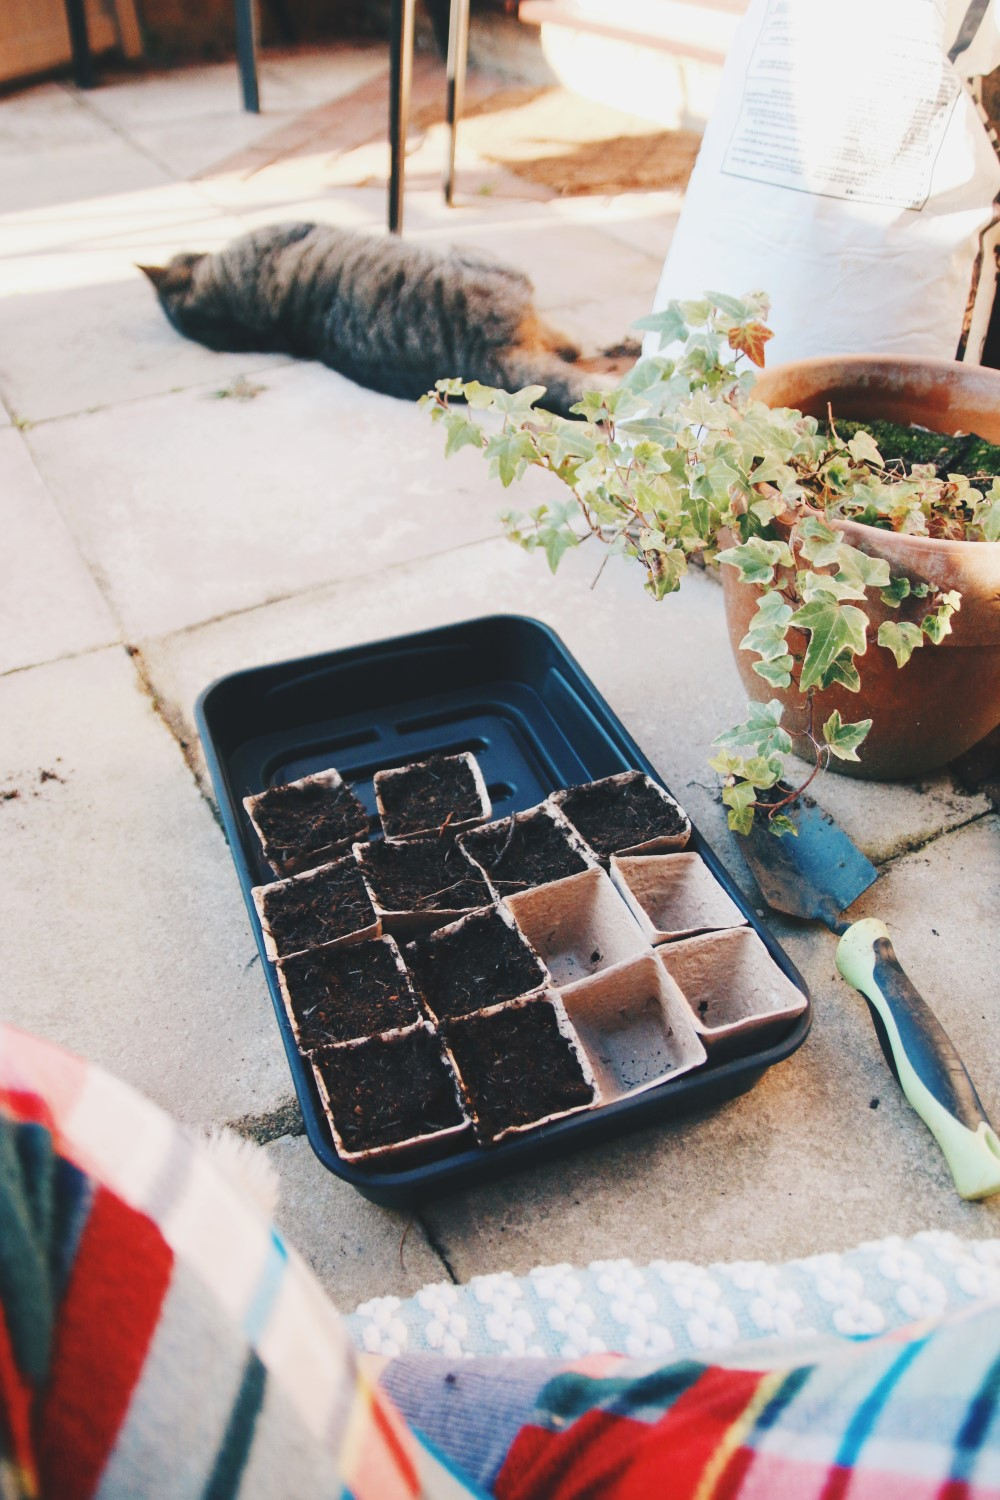 Grow Your Own - 5 Easy to Grow Veggies for Beginners